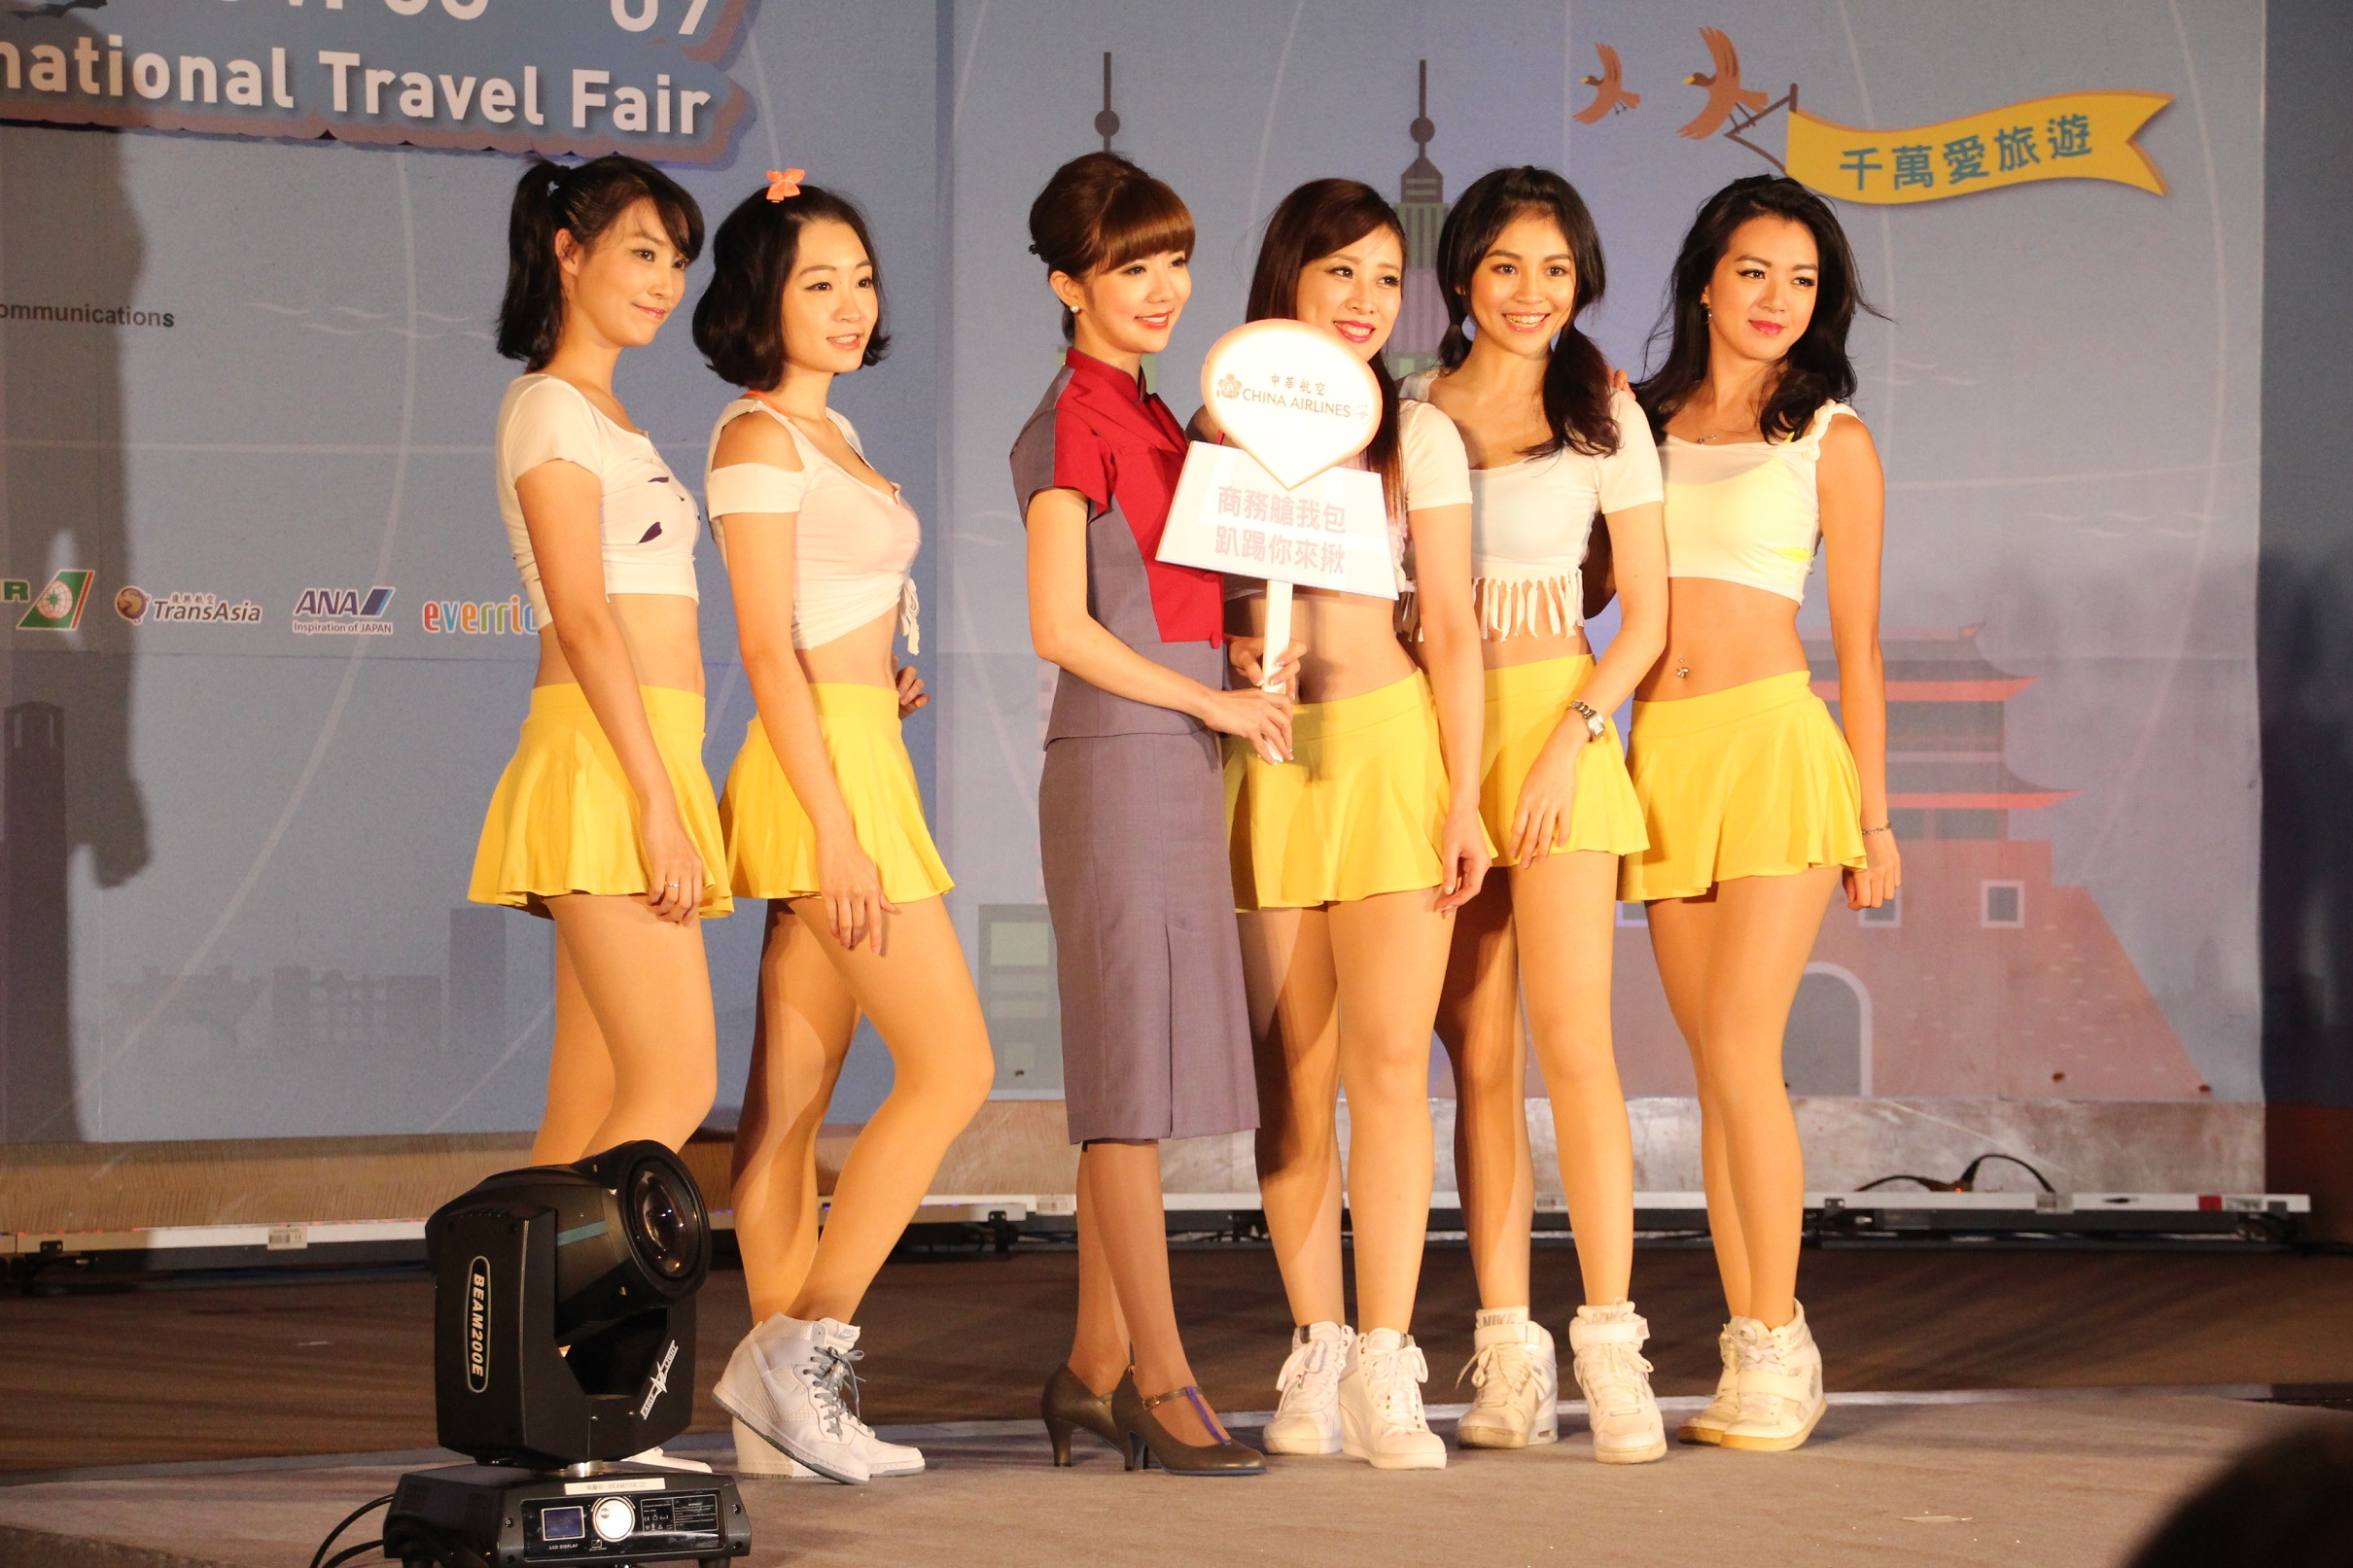 The ITF 2015 pre-show conference includes an opening dance performed by the China Airlines flight crew on Wednesday.